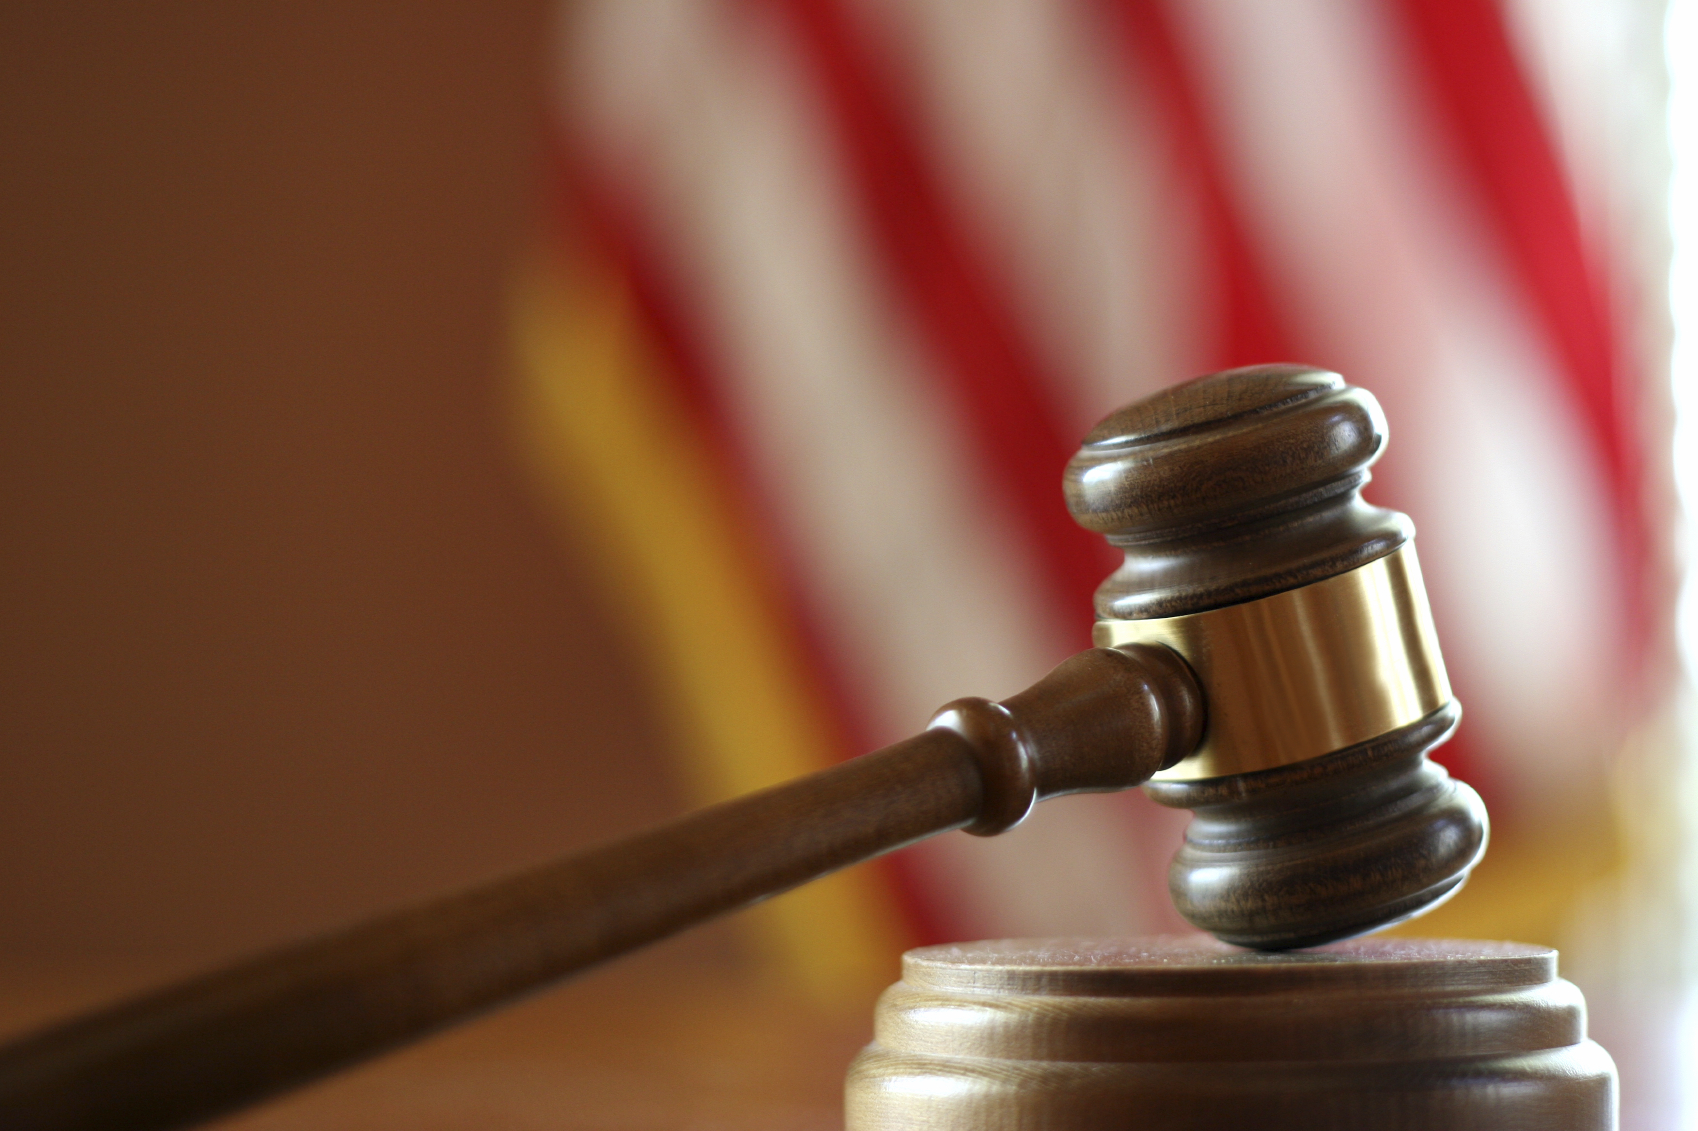 Judge Says He Regrets 55-Year Sentence for Weed